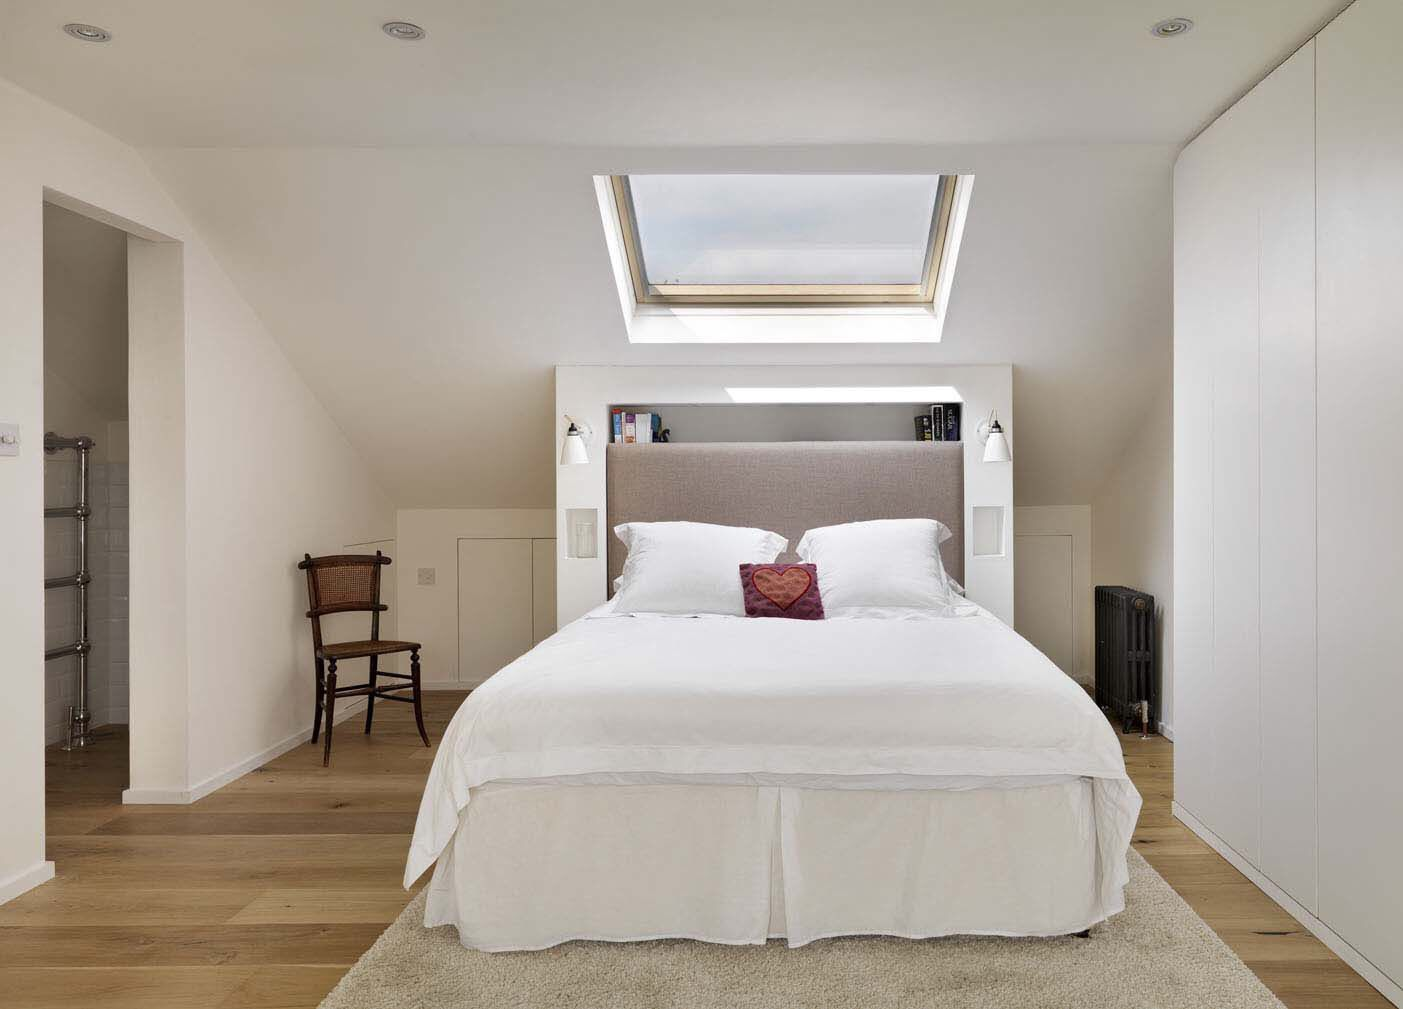 Home Improvements 民宿 Pinterest Attic Lofts And Loft Room - Loft conversion bedroom ideas